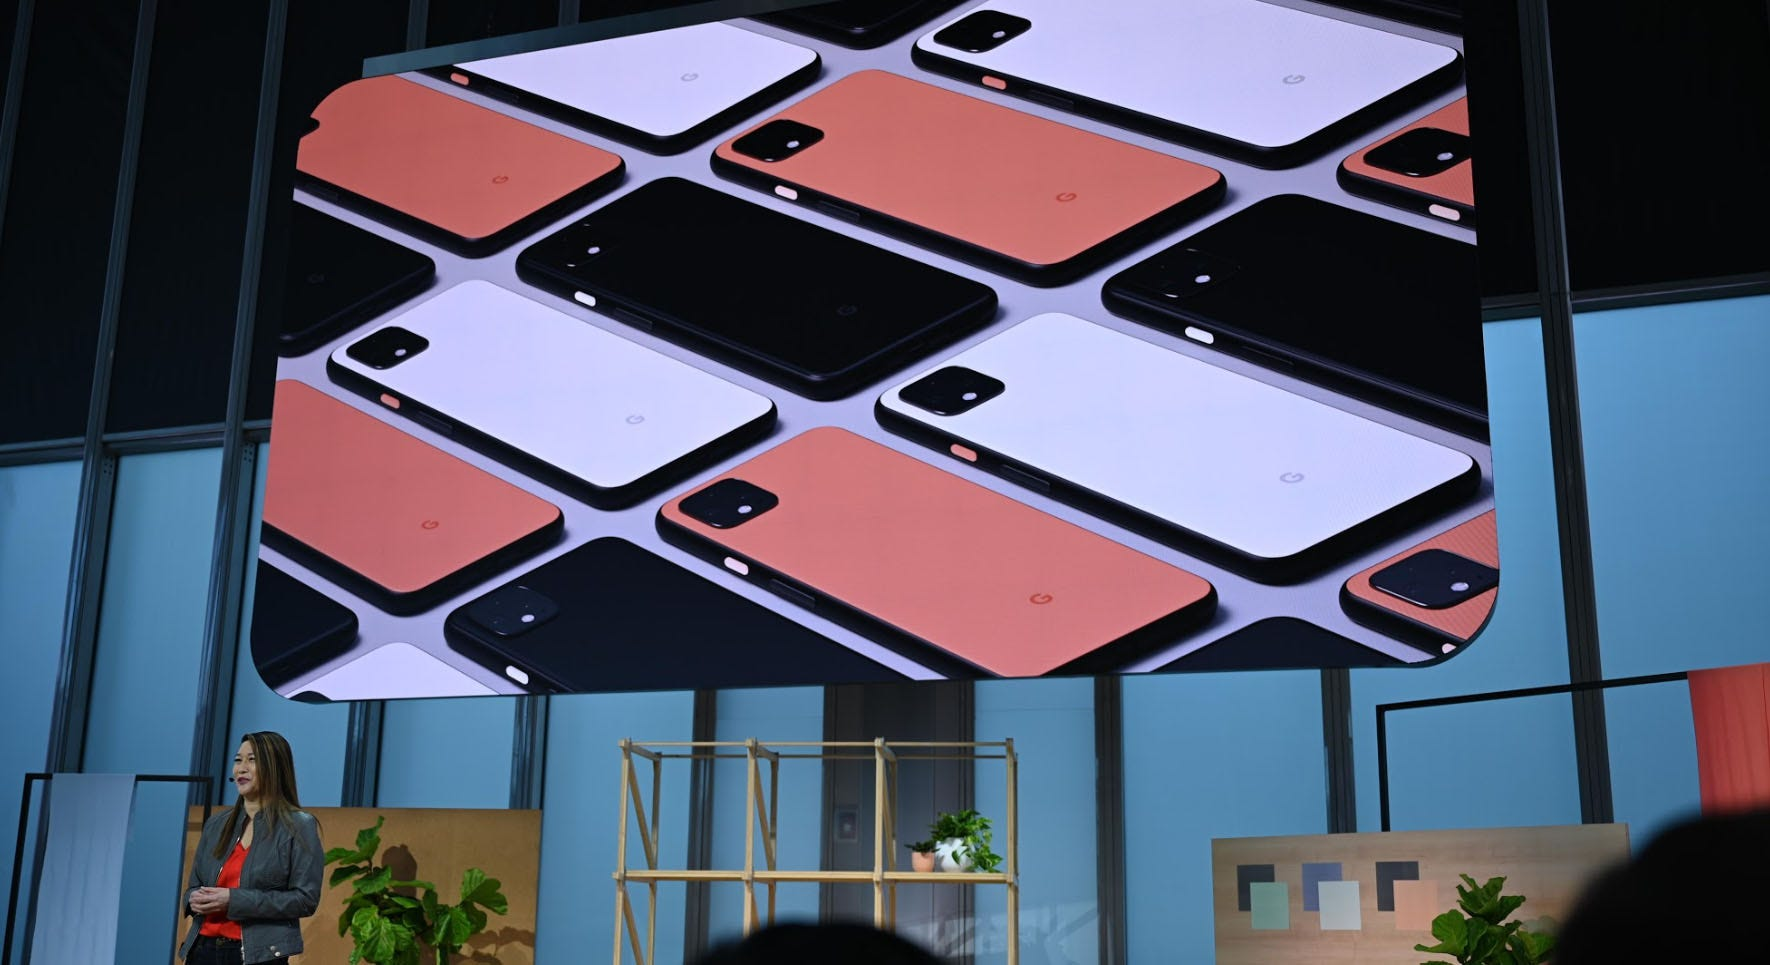 The Pixel 4 at Google's event.